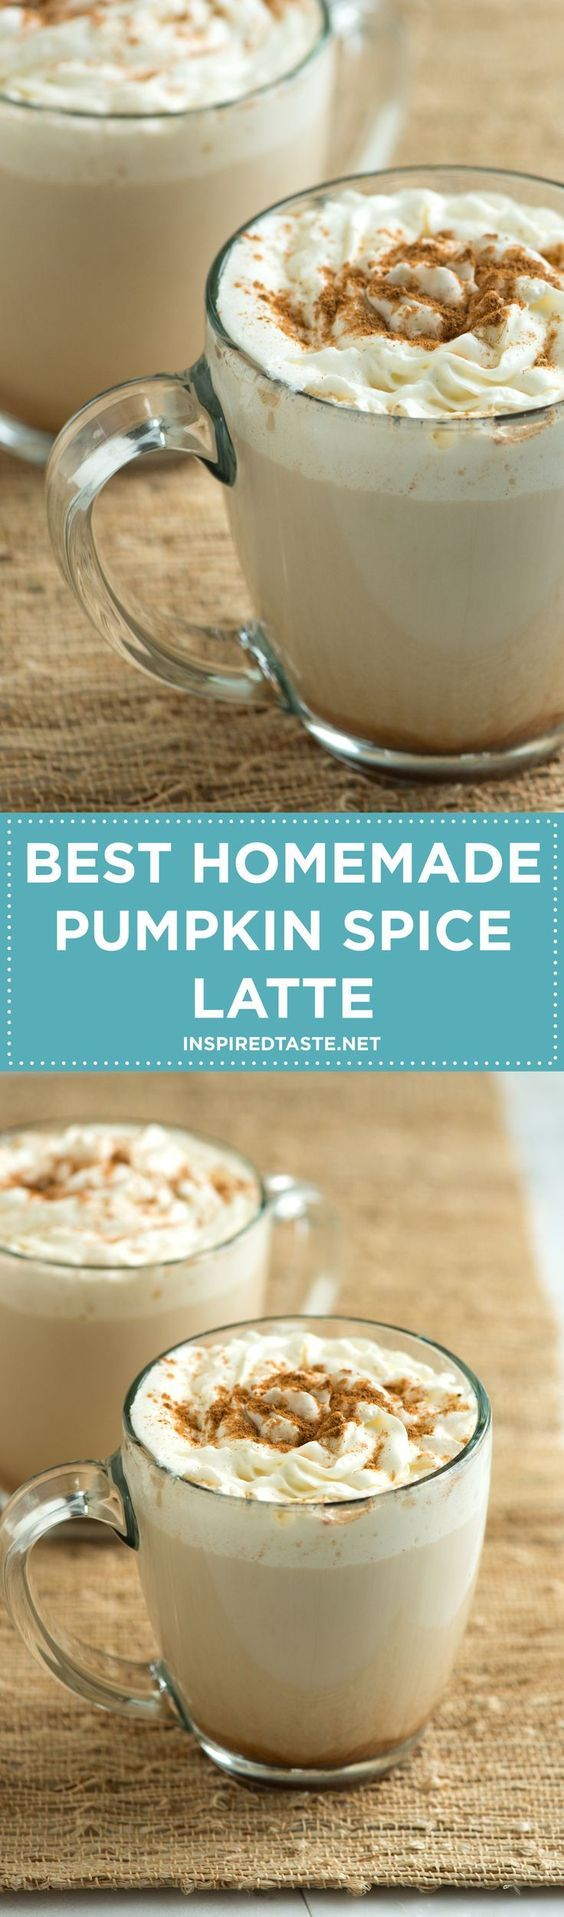 Homemade And EASY Pumpkin Spice Lattes Get The Recipe On Inspiredtaste